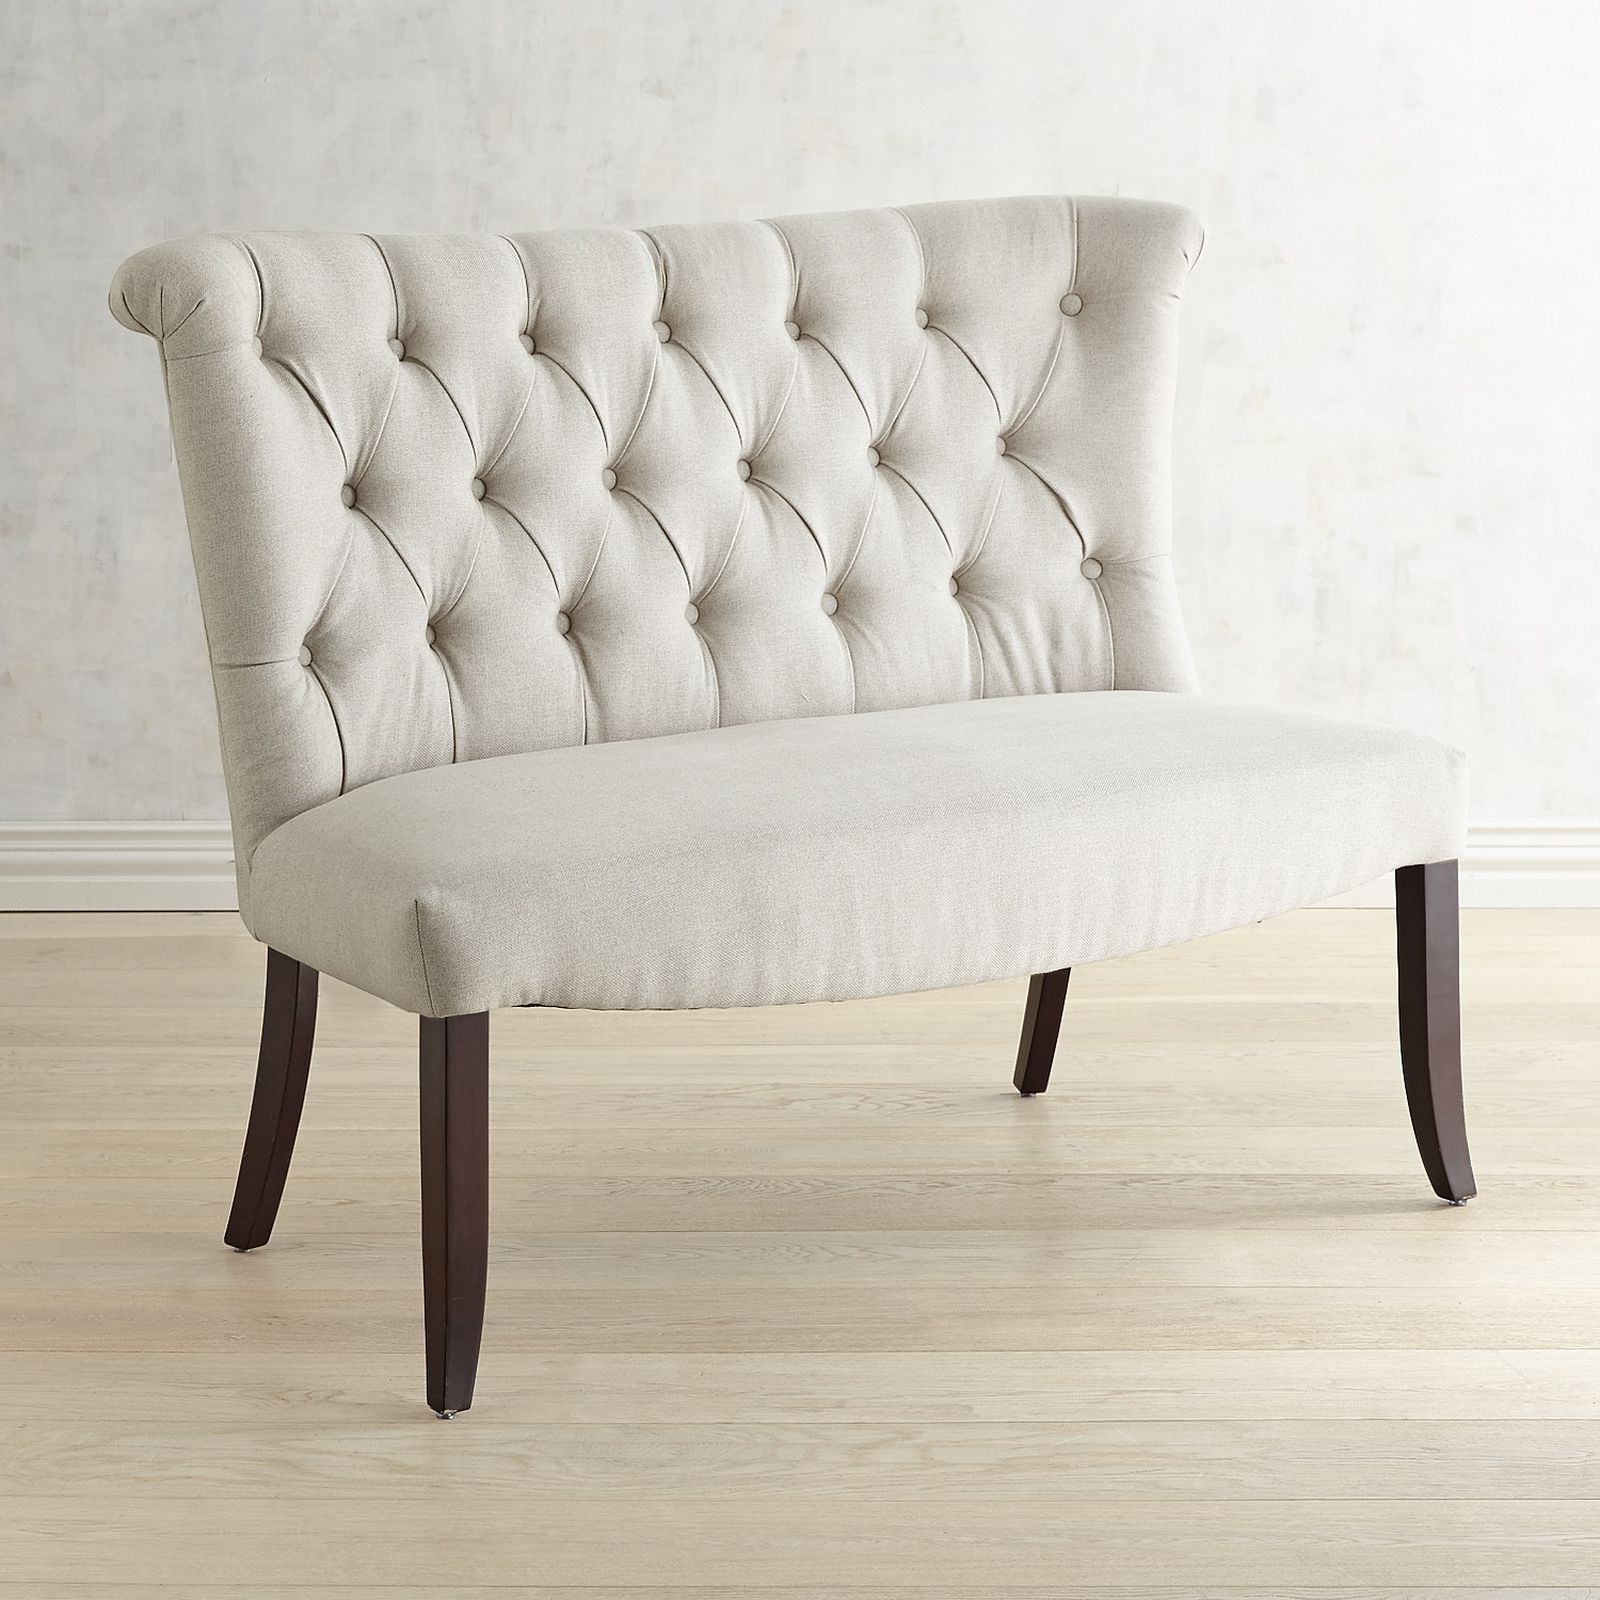 Lovely Colette Flax Banquette Dining Bench With Espresso Wood